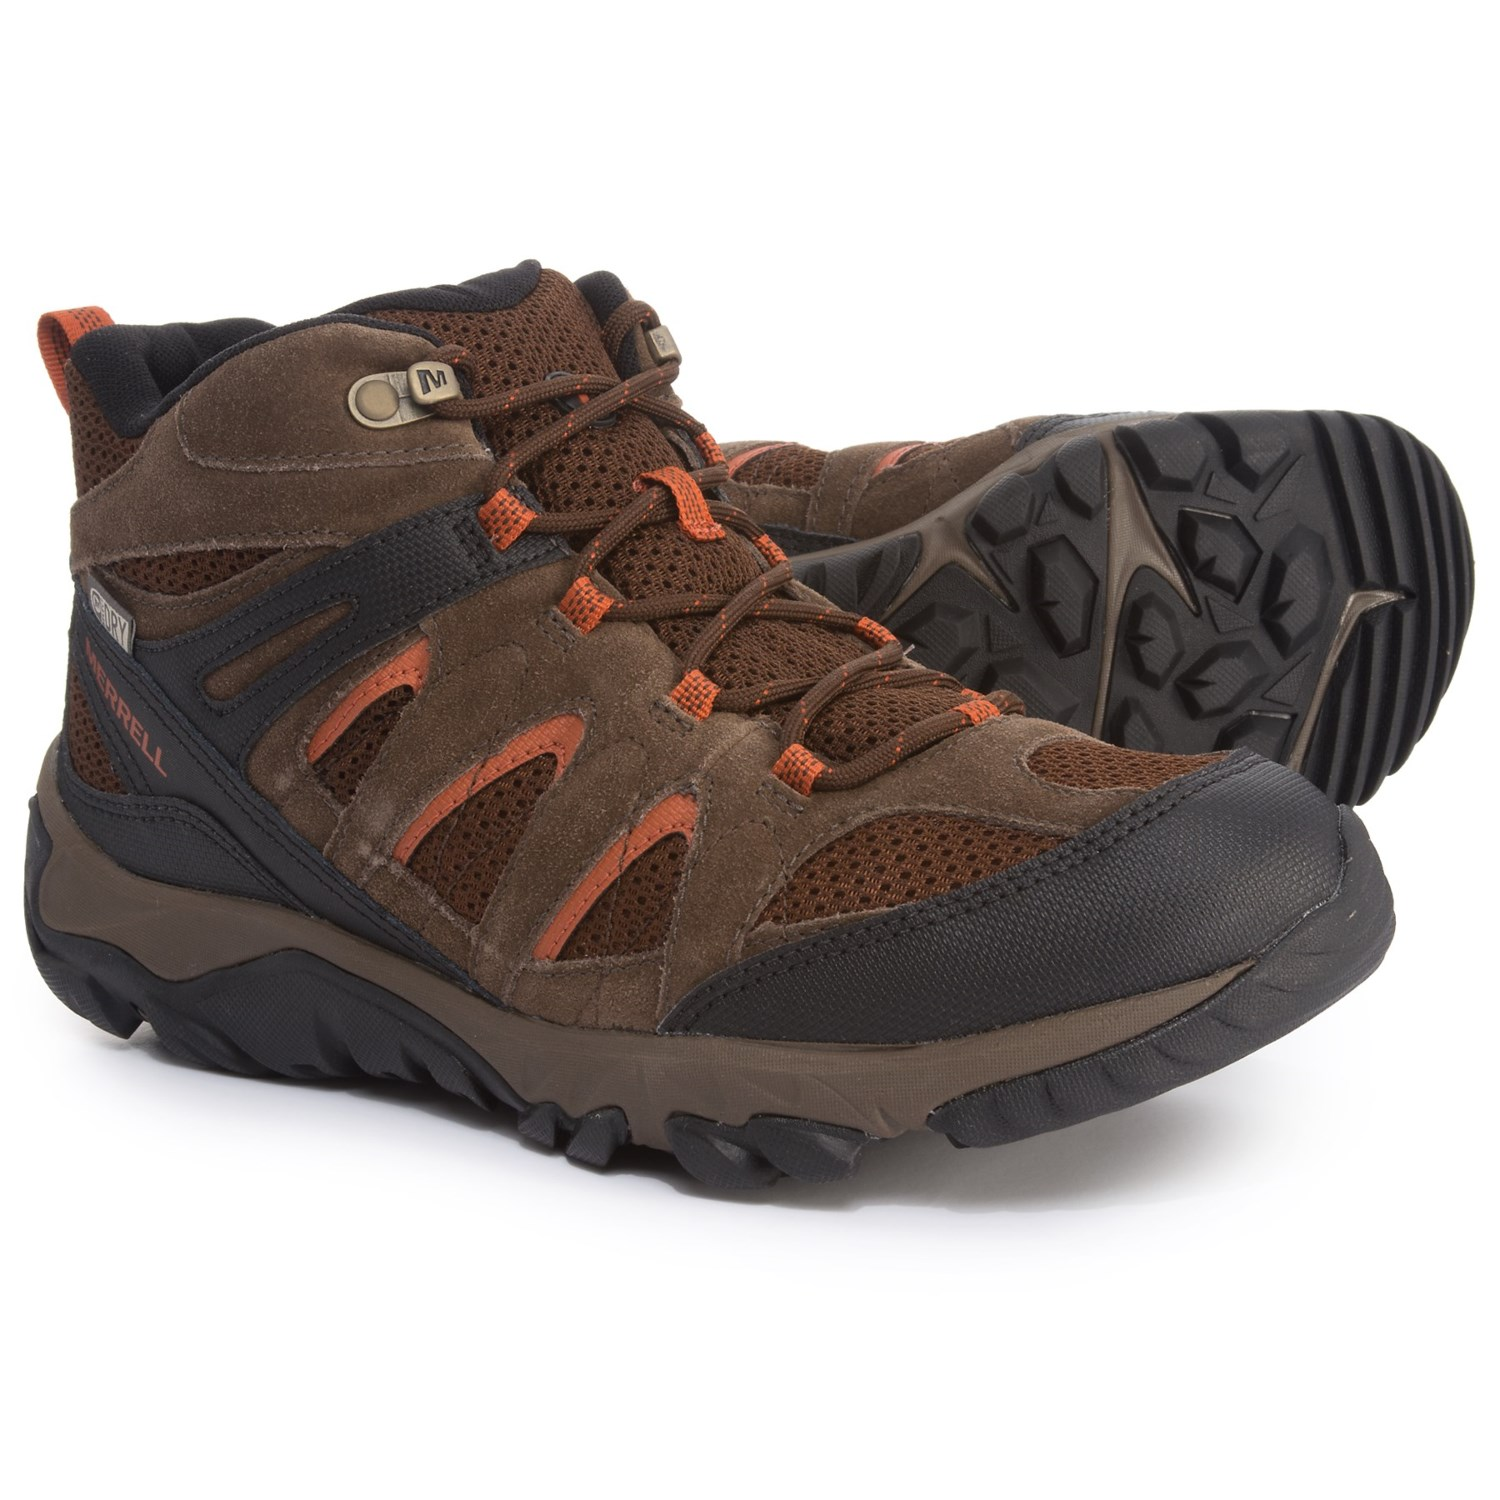 0518bd5a3a Merrell Outmost Mid Vent Hiking Boots - Waterproof (For Men)